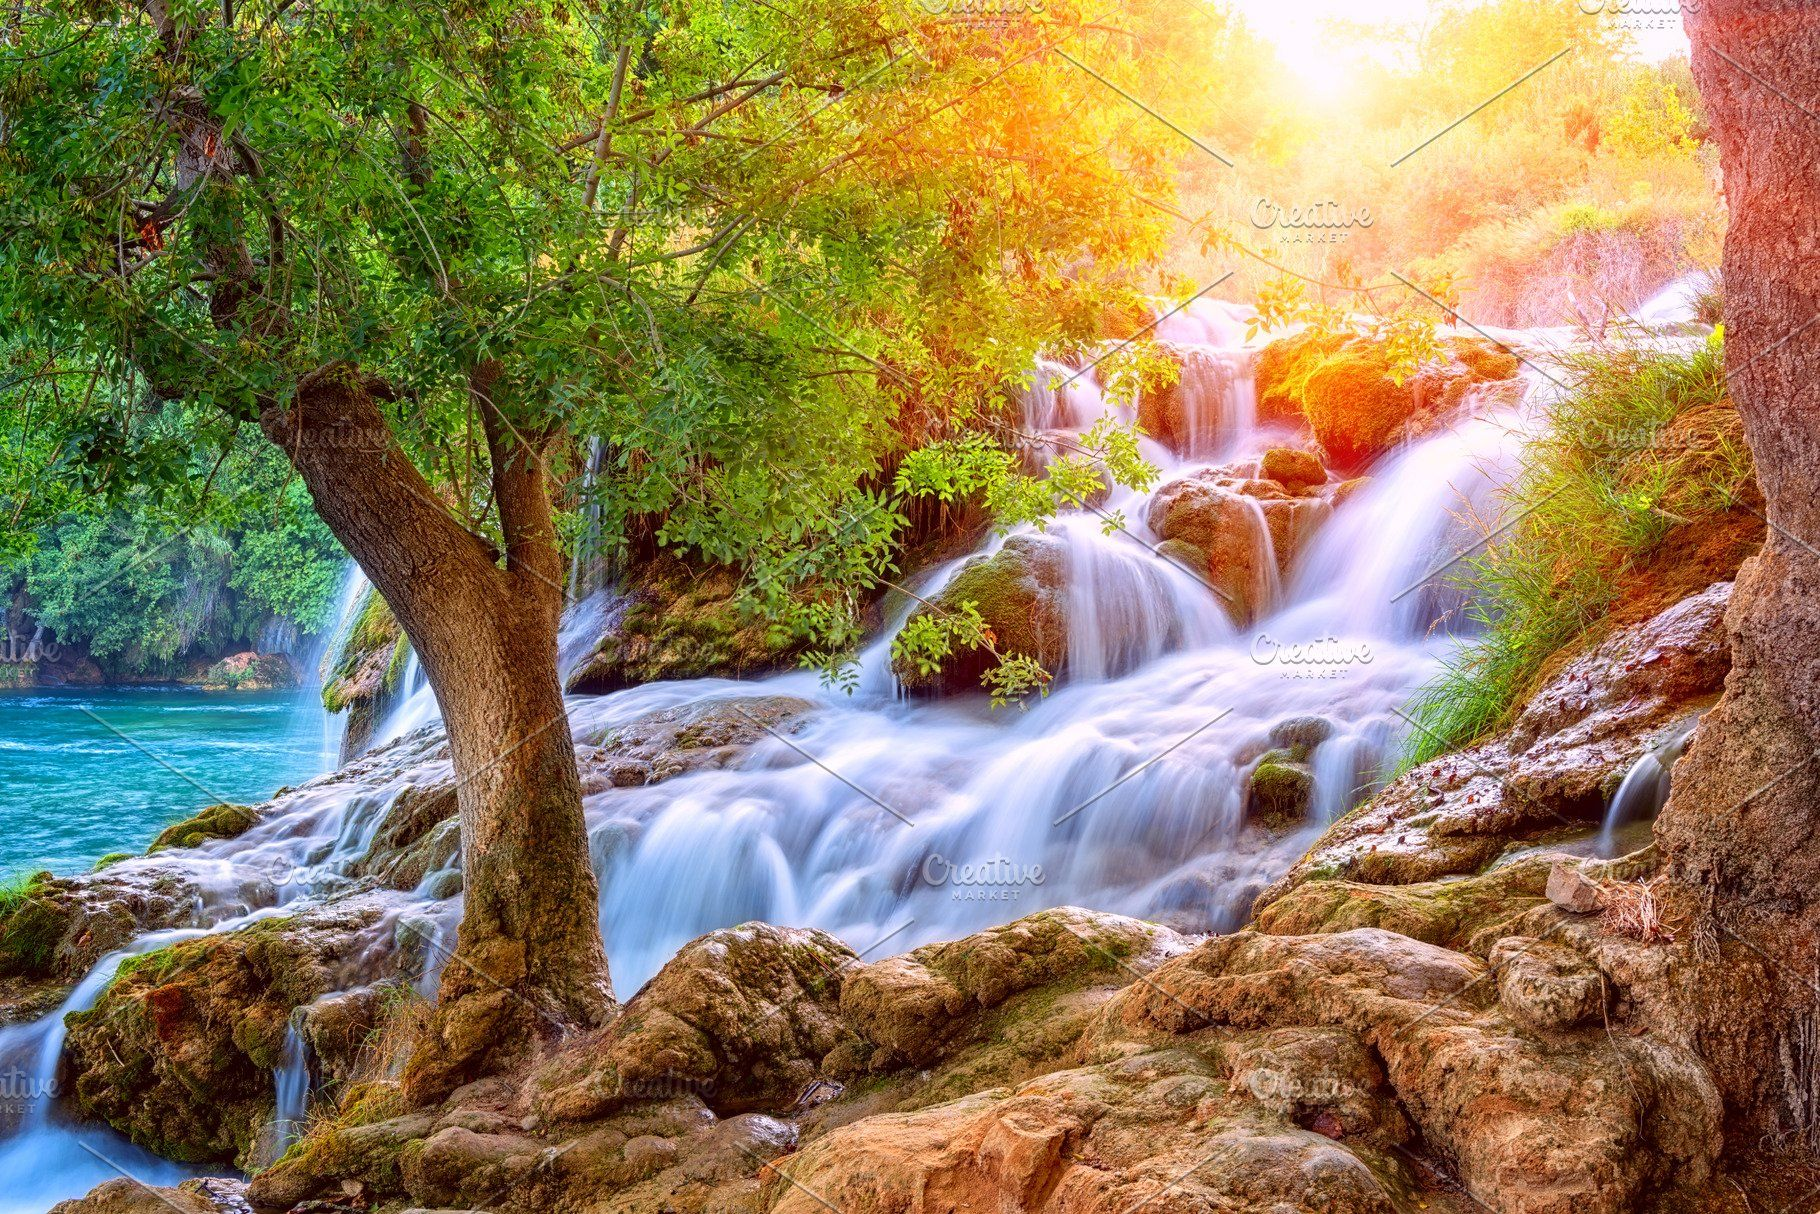 Amazing Nature Landscape Waterfall High Quality Nature Stock Photos Creative Market In 2020 Amazing Nature Photos Amazing Nature Landscape